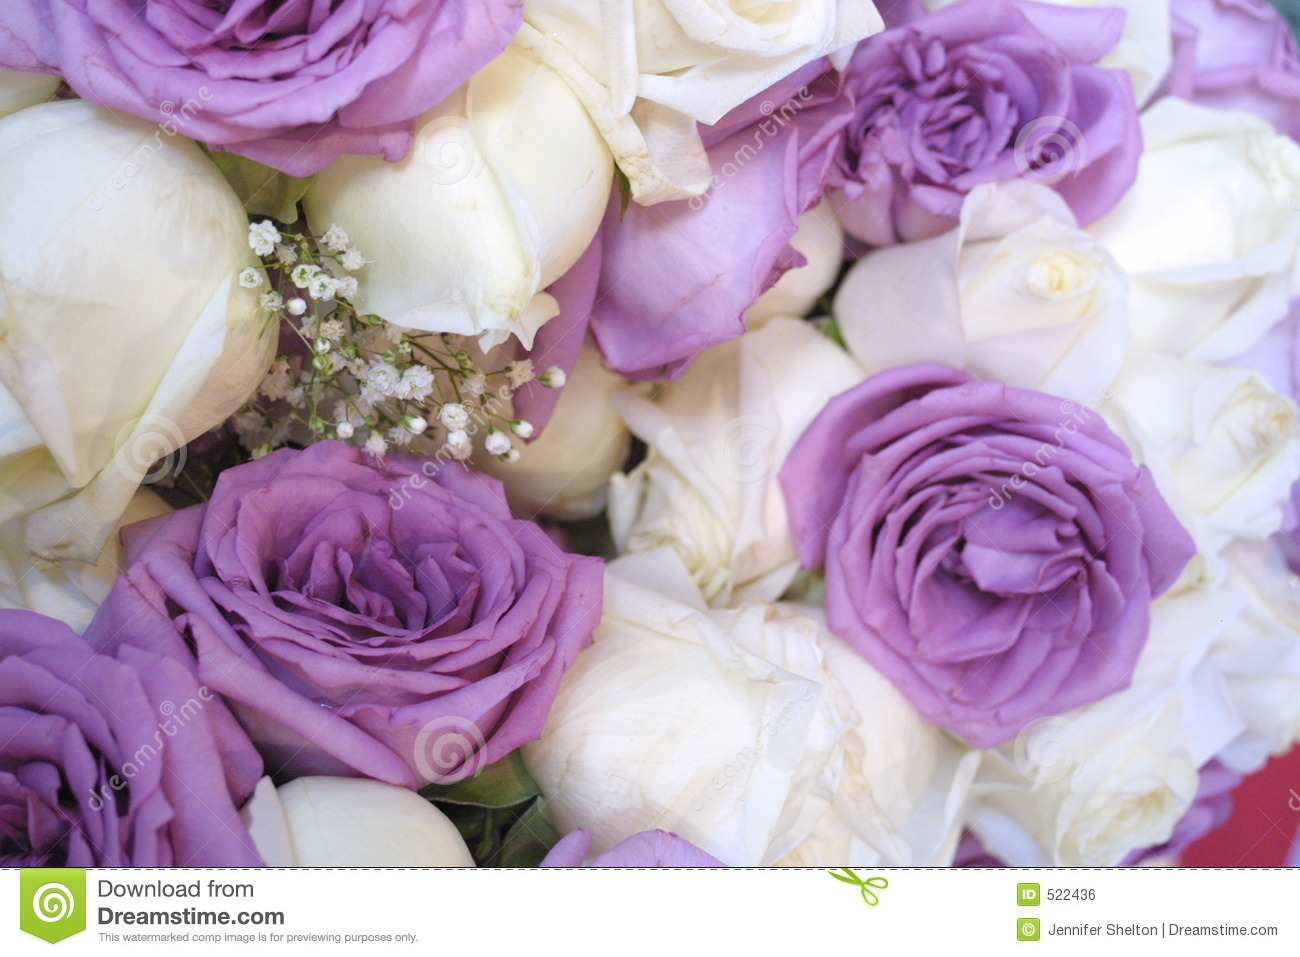 Baby Pink Iphone Wallpaper Wedding Flowers Royalty Free Stock Image Image 522436